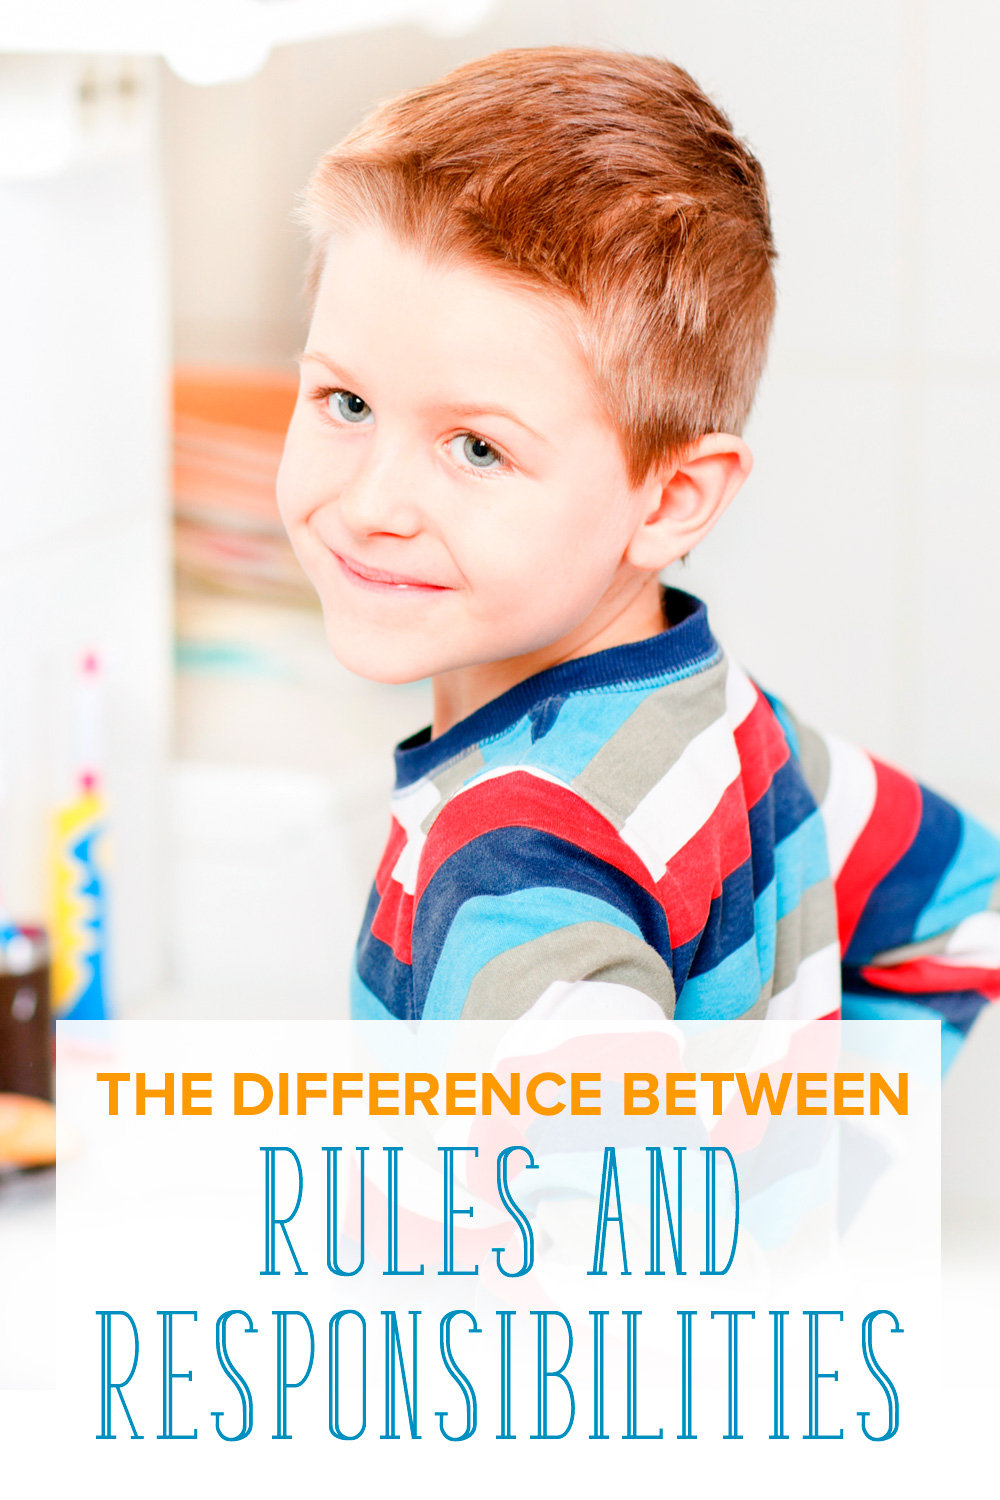 Responsibilities are an more effective way to teach ownership and accountability. Learn the difference between rules and responsibilities for kids.